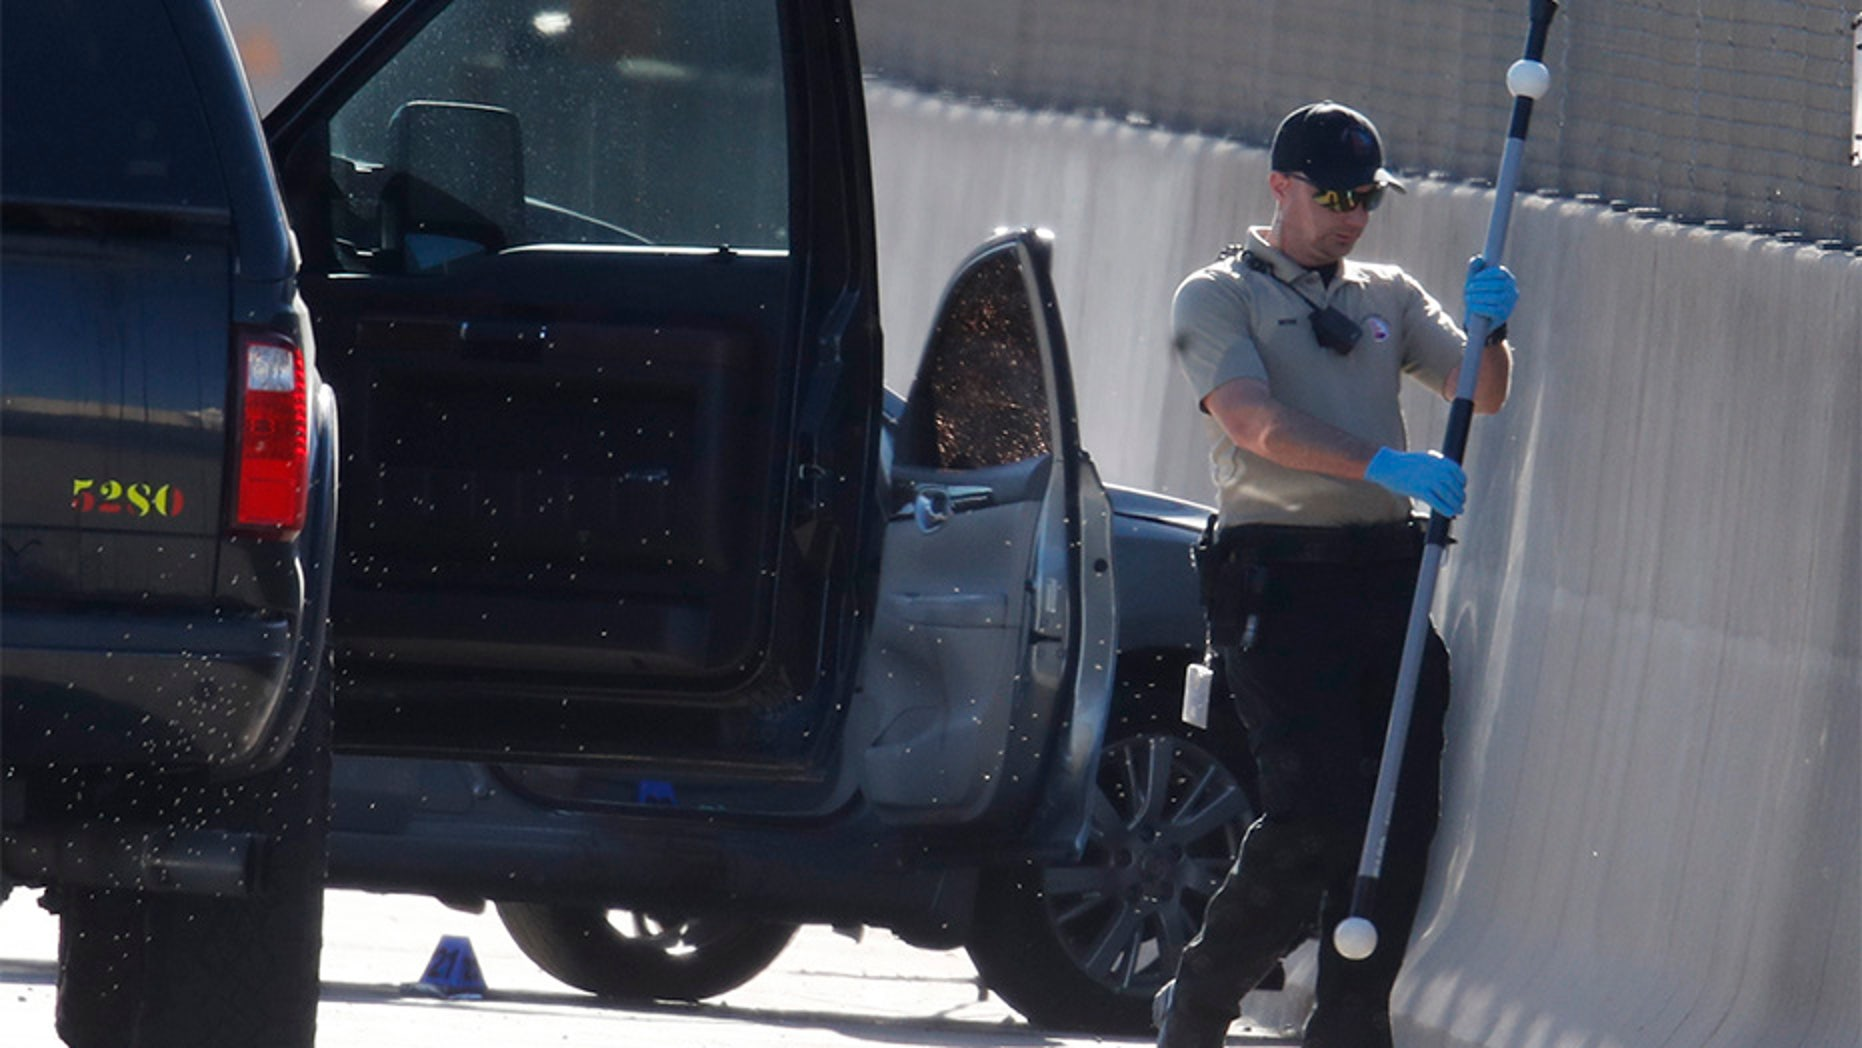 June 1, 2018: A Denver Police Department technician investigates the scene where a Nissan sedan, background center, being driven by an Uber driver crashed into a retaining wall along Interstate 25 south of downtown Denver early Friday.